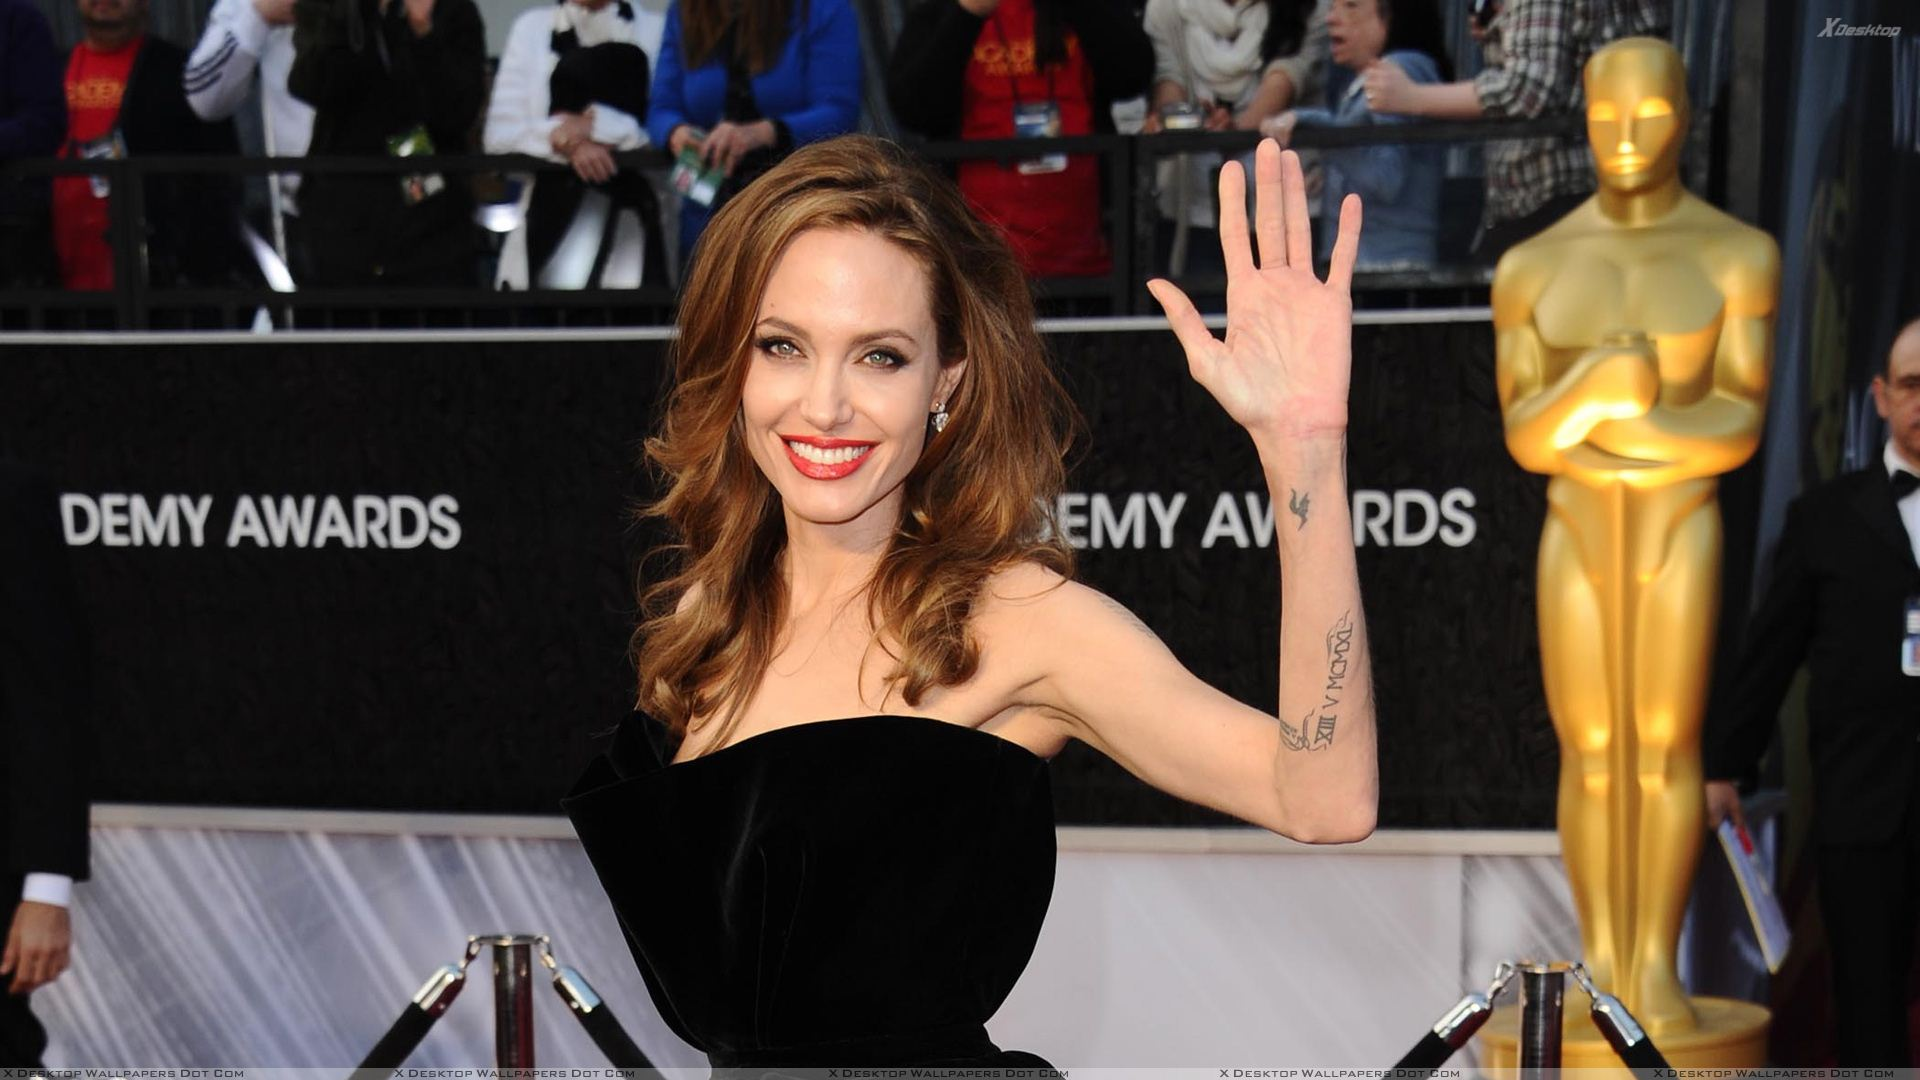 Black dress saying - You Are Viewing Wallpaper Titled Angelina Jolie Saying Hii In Black Dress